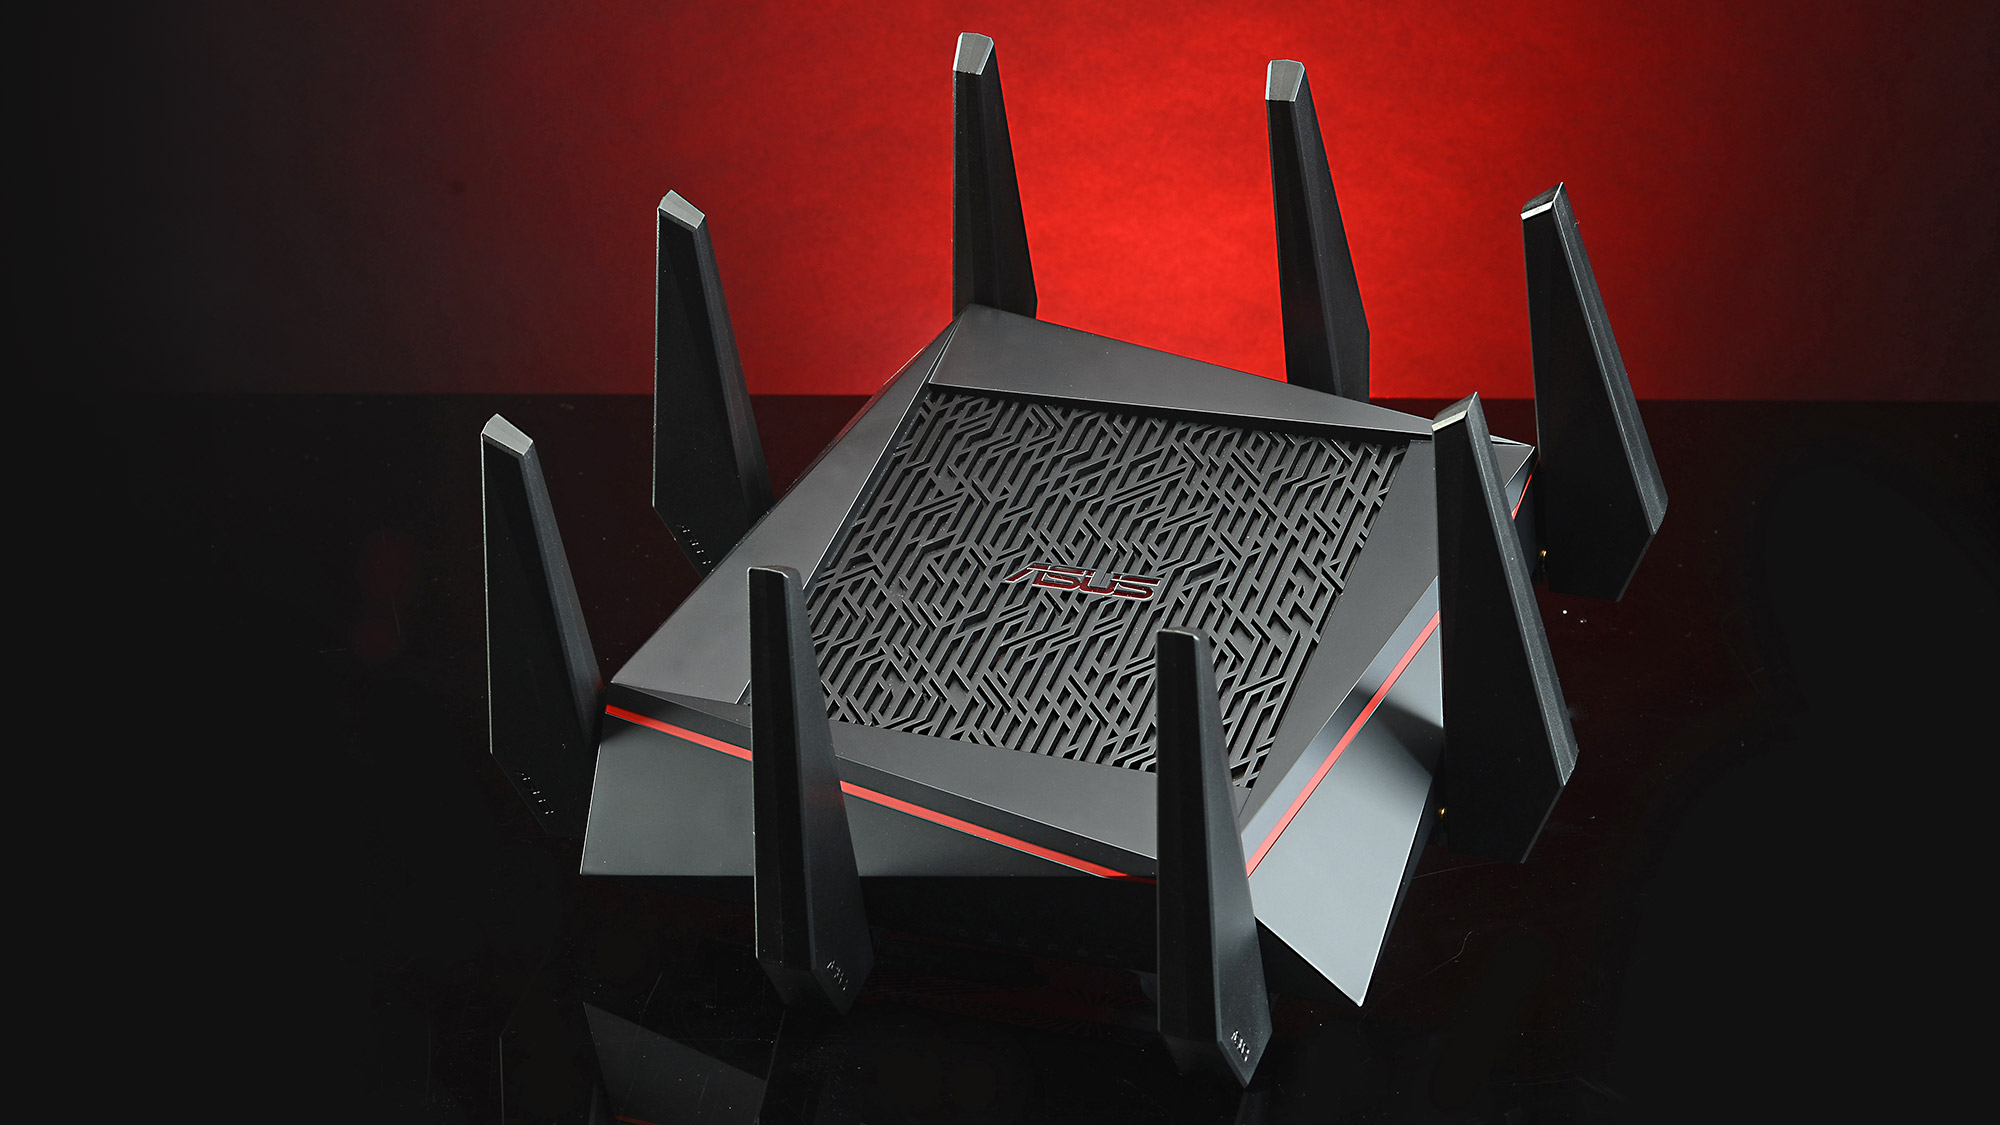 Best wireless routers 2019: the best routers for your home network